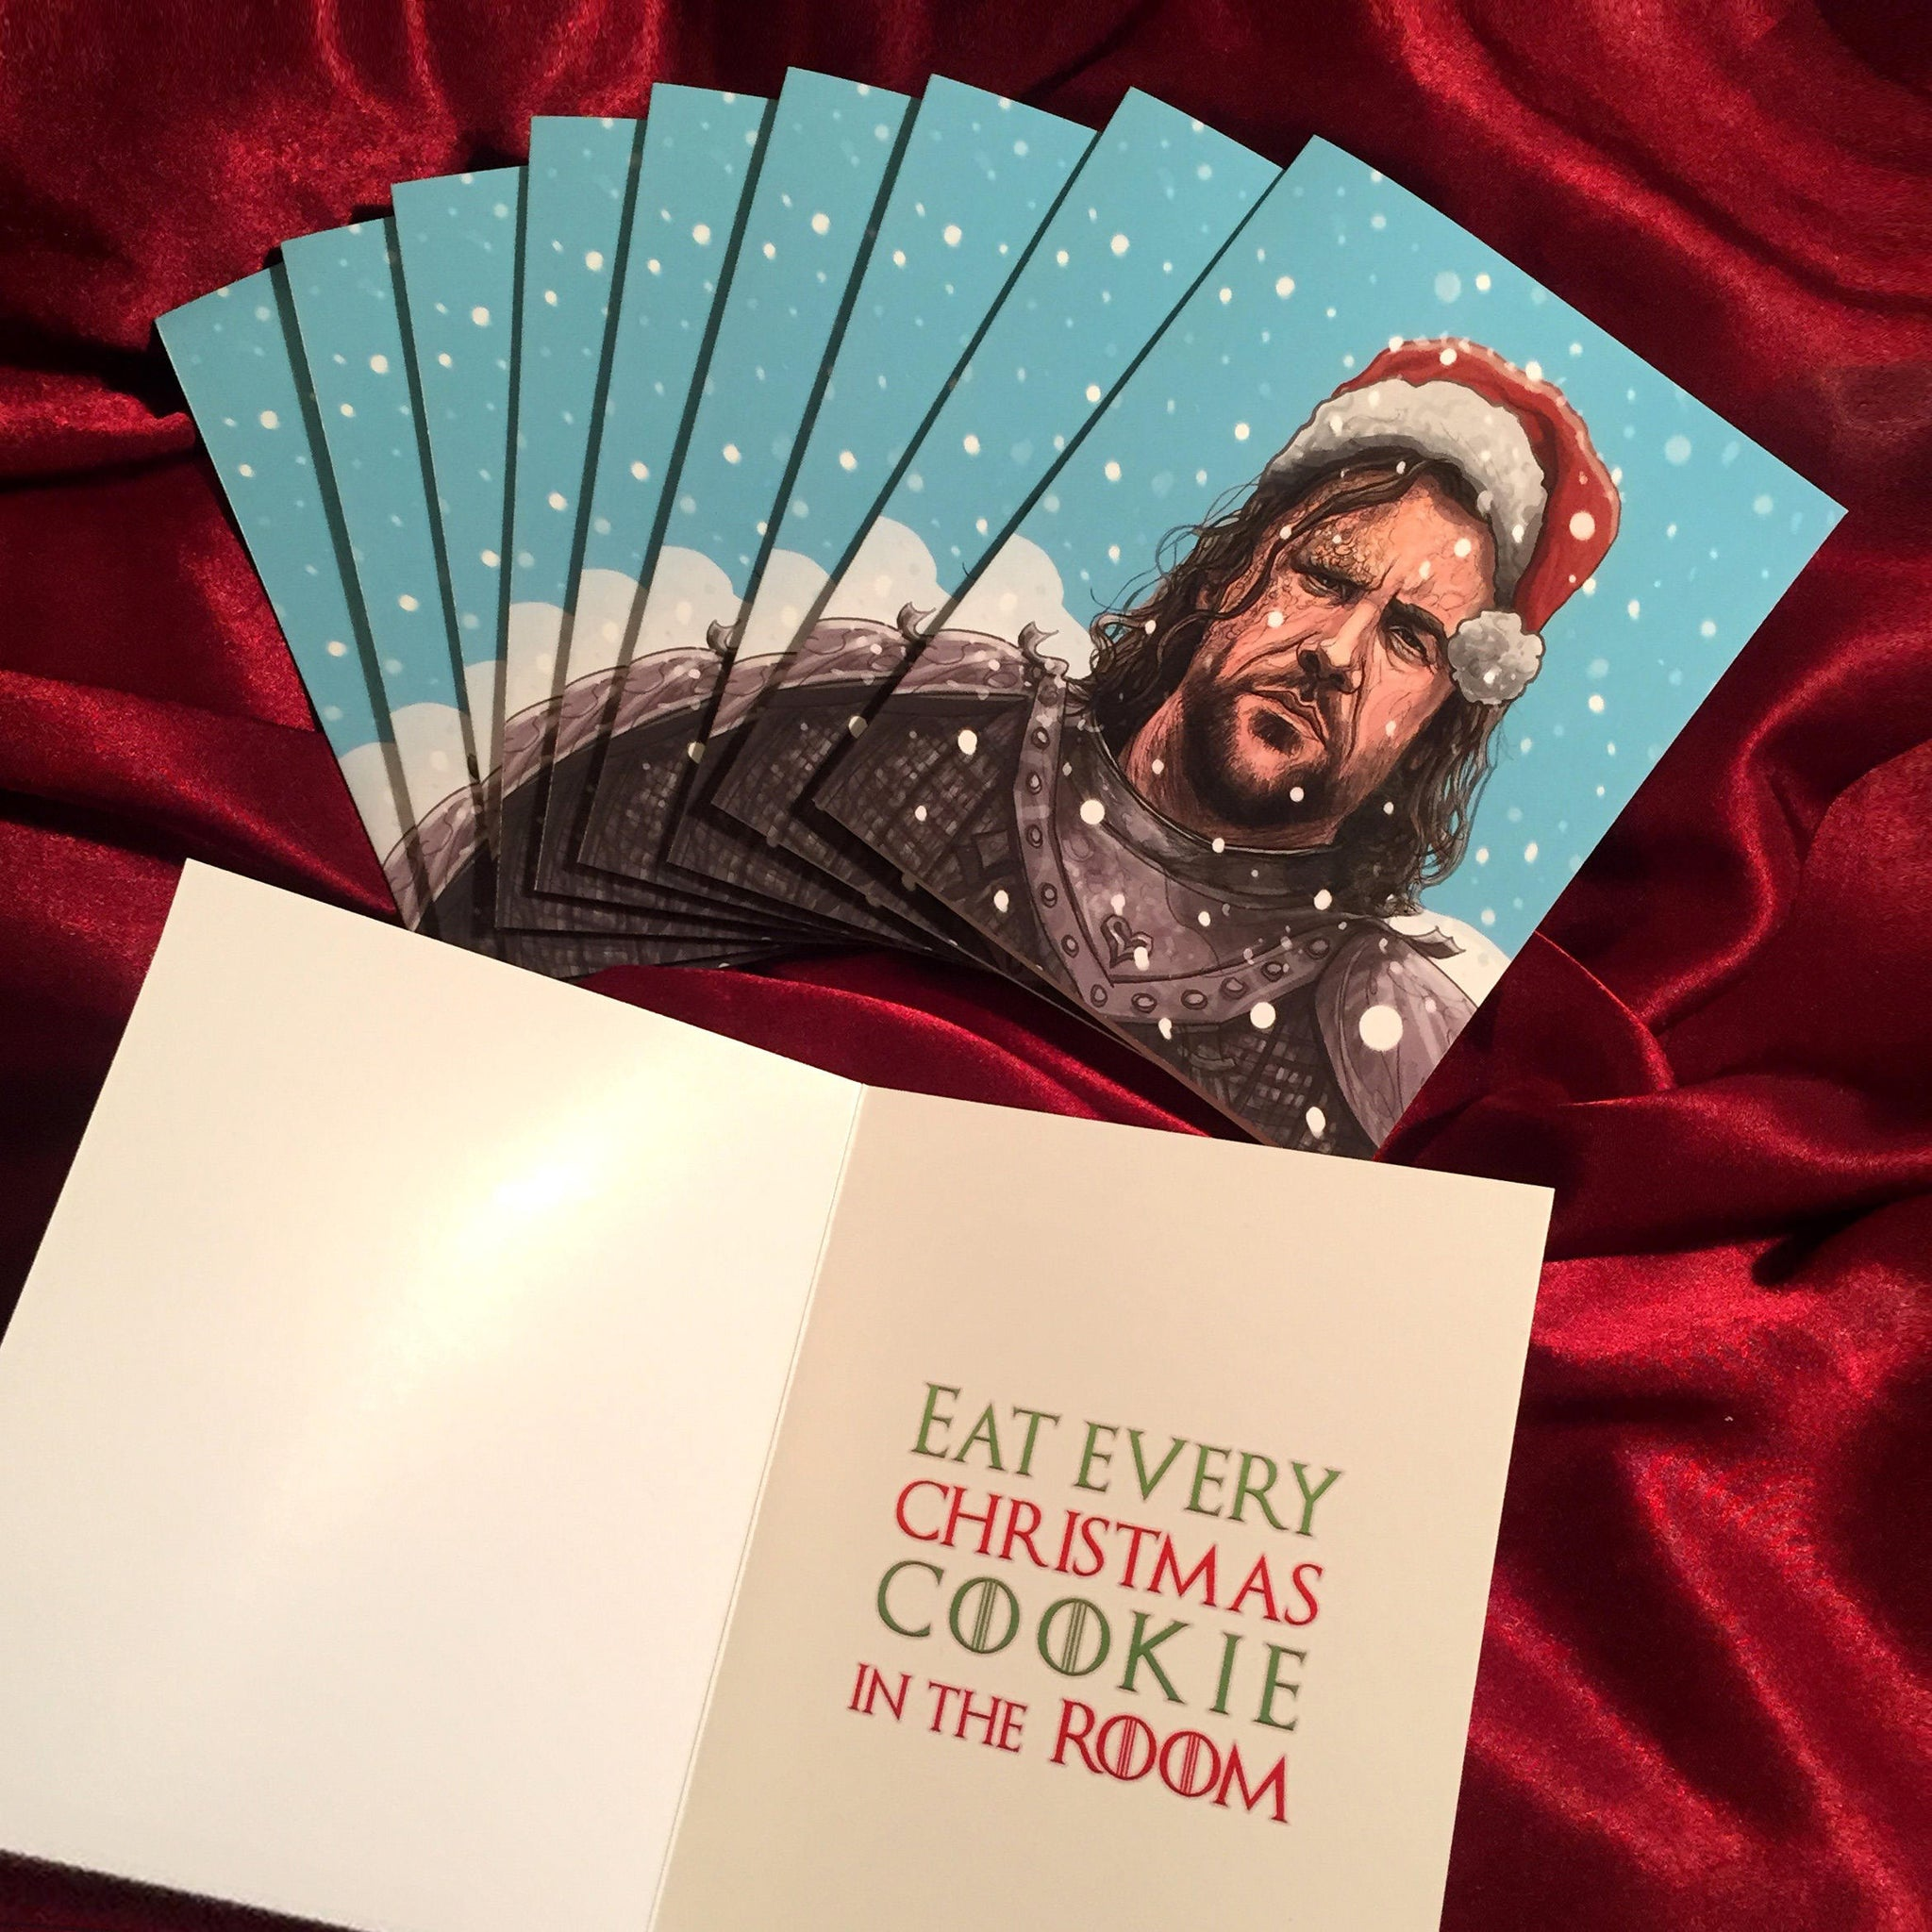 10 Pack THE HOUND Game of Thrones Christmas CARD!